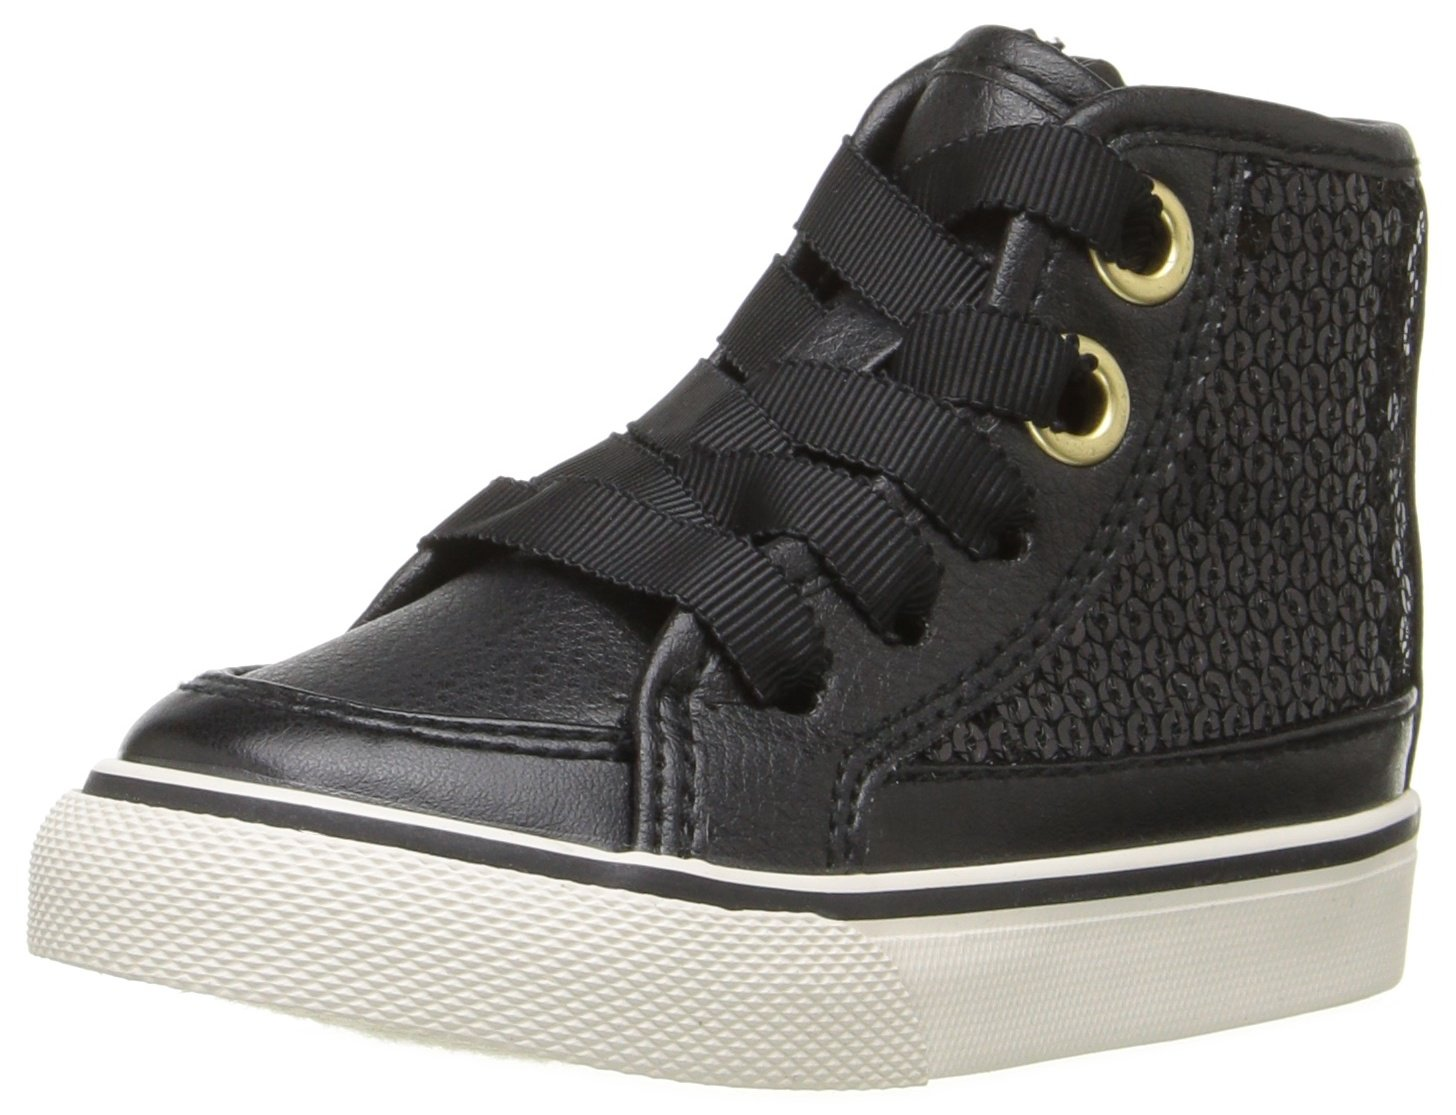 The Children's Place Kids' Girls' Lace-up Sneaker The Children' s Place